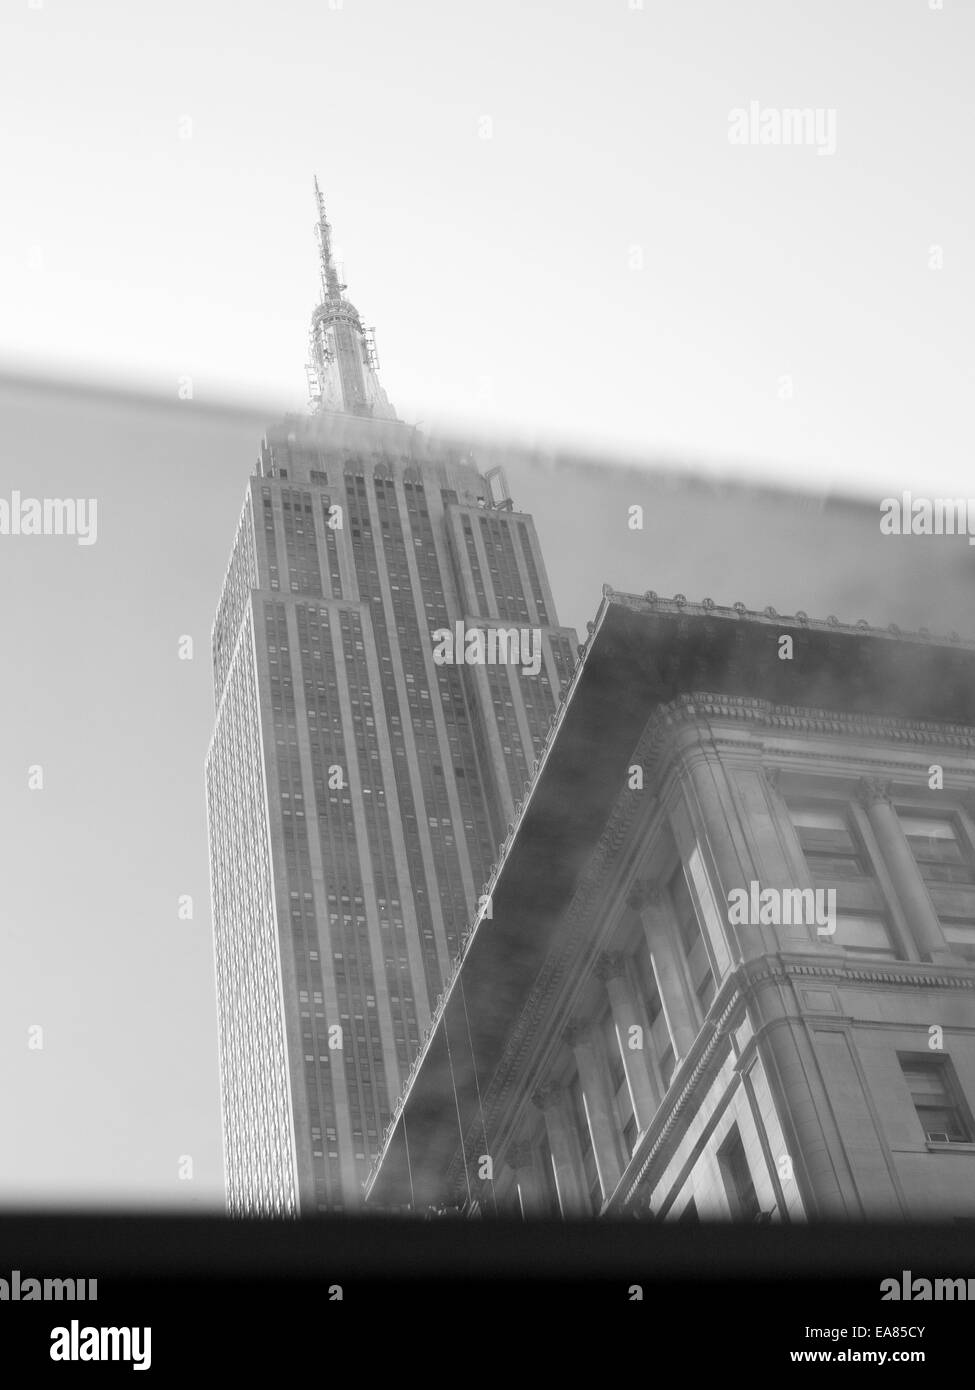 Empire State Building seen through car window - Stock Image